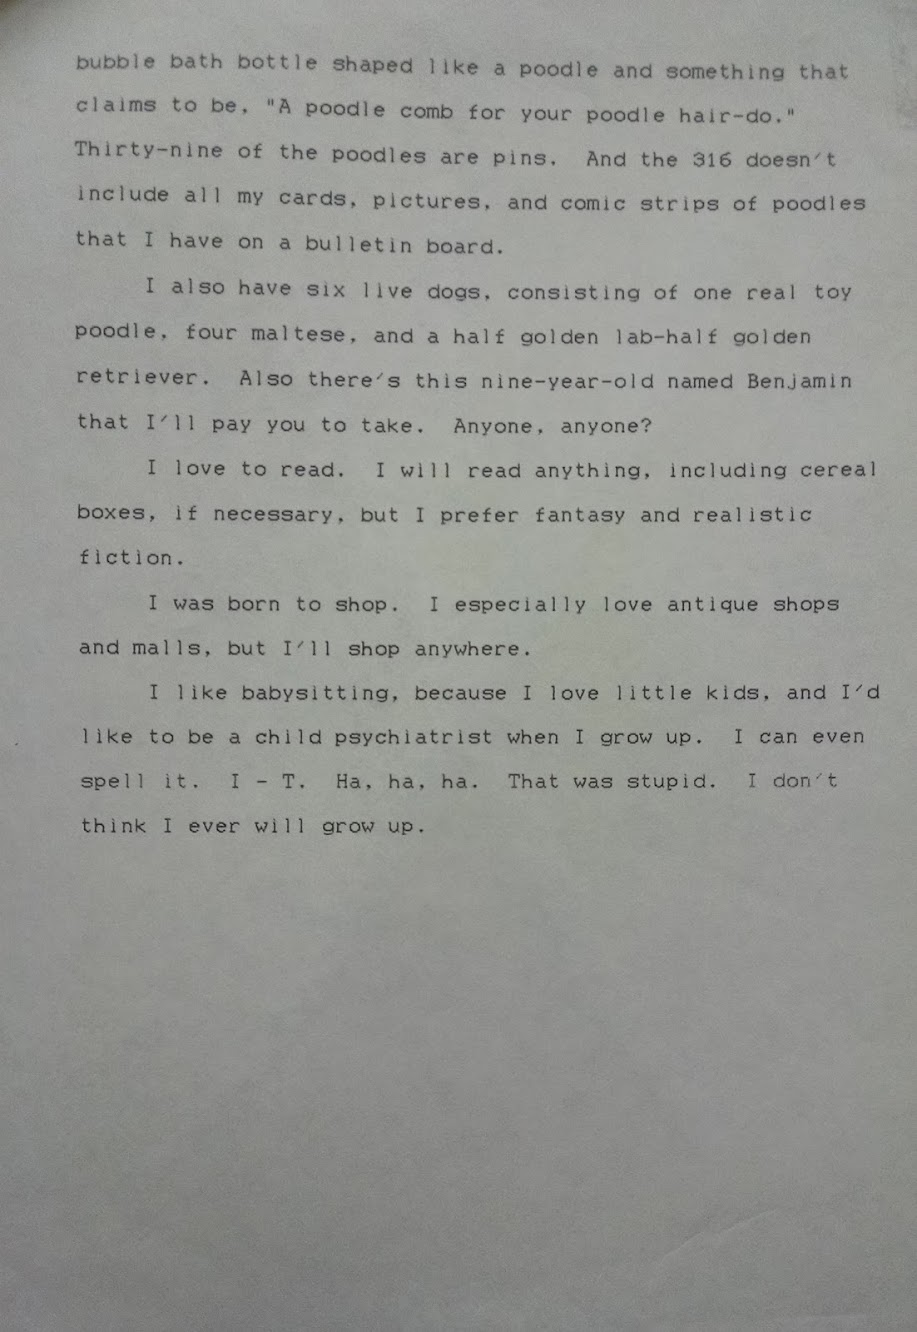 composition about Me, page 2